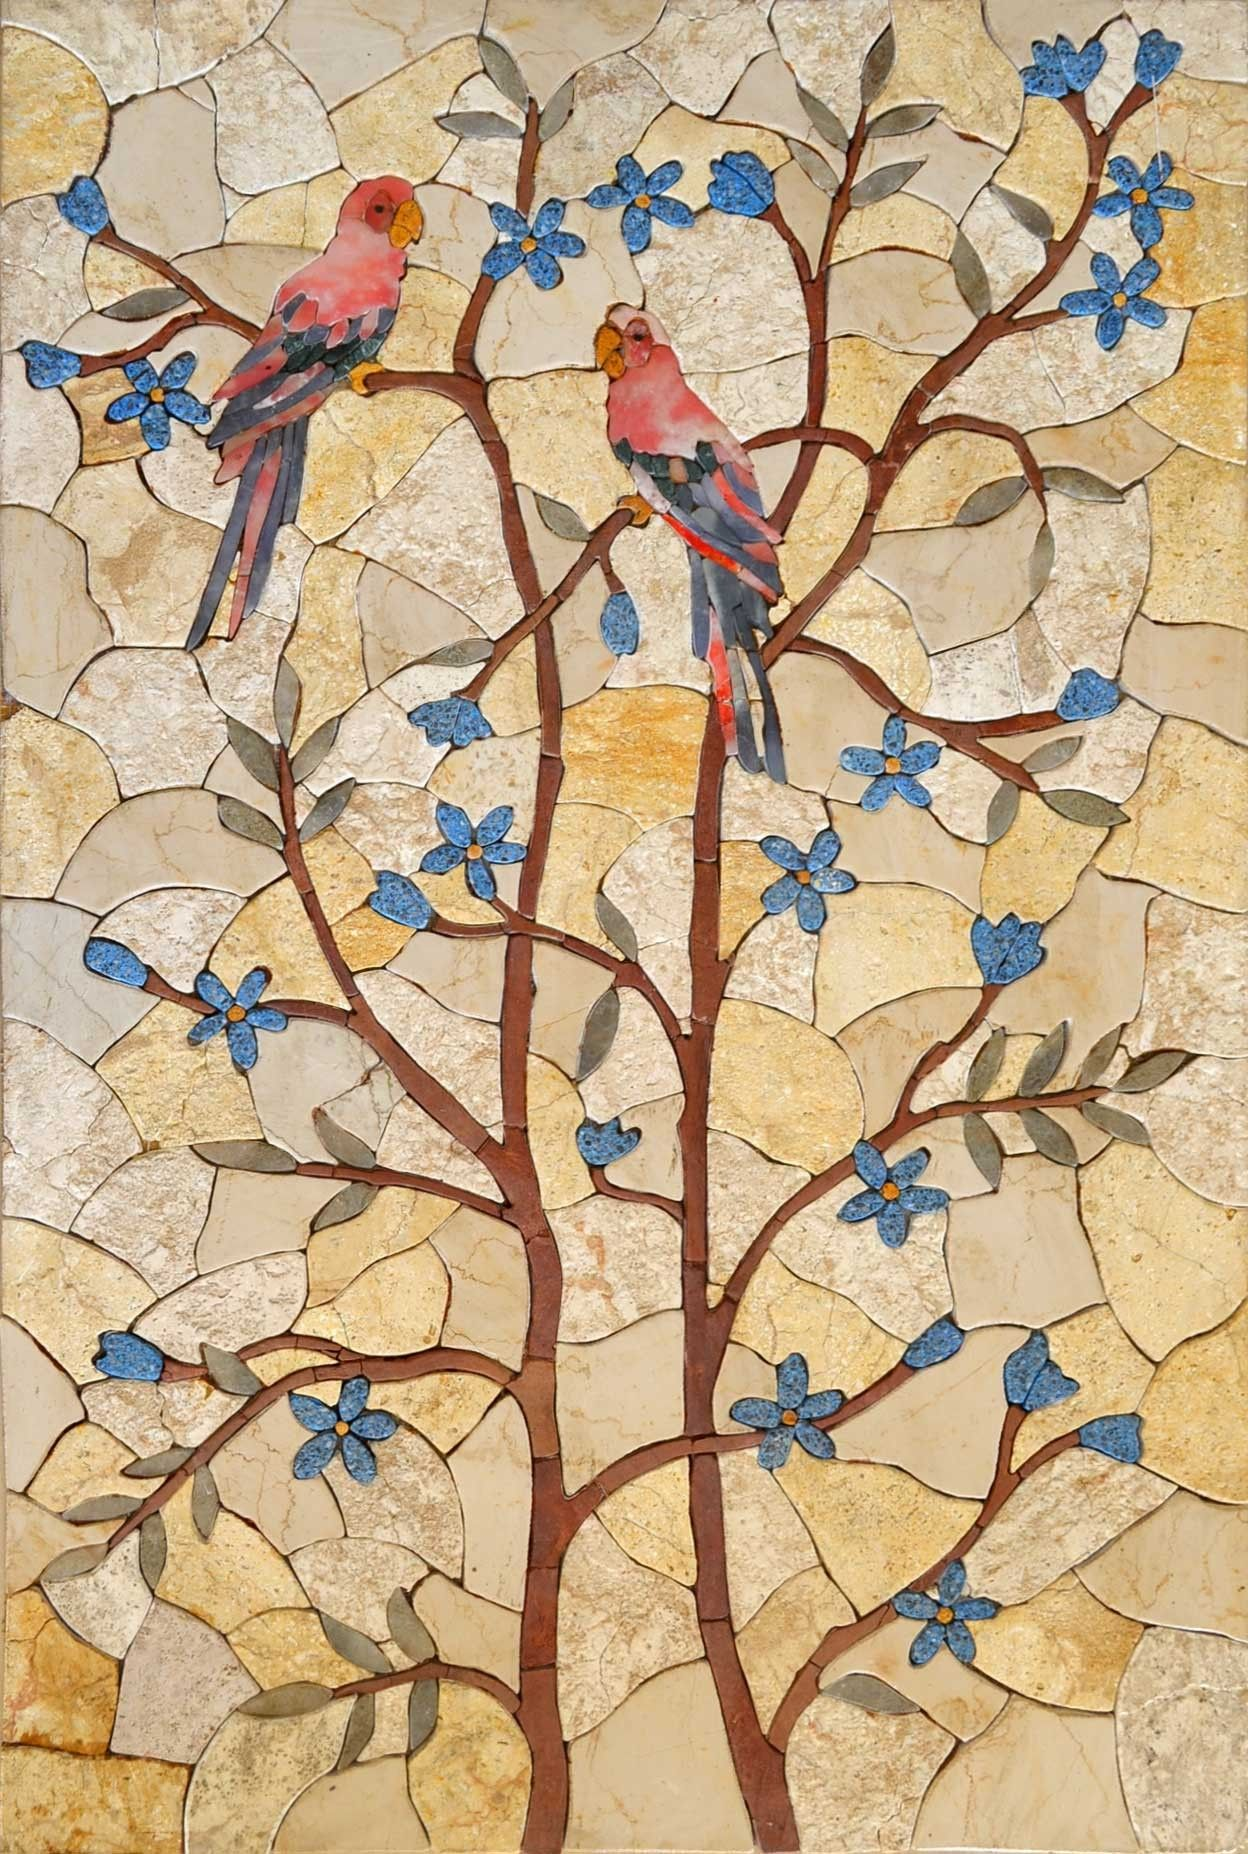 Mosaic Artwork - Birds on Trees | Mosaic artwork, Marble mosaic and ...